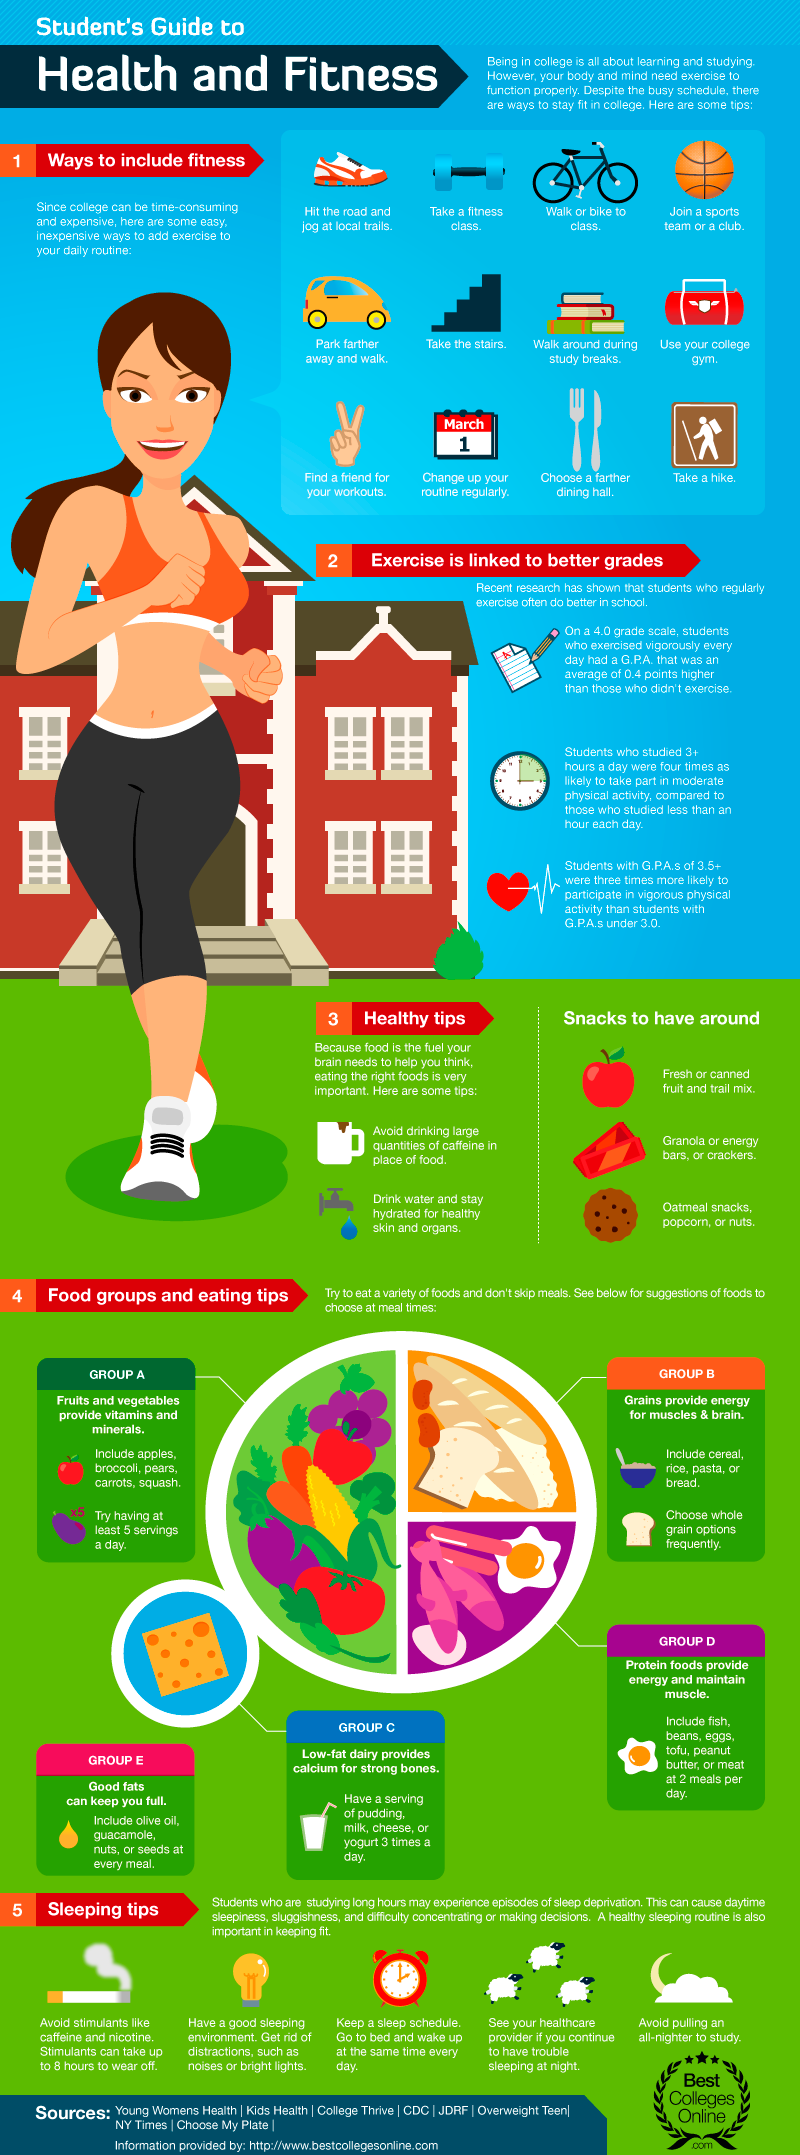 Quick guide to student health and fitness